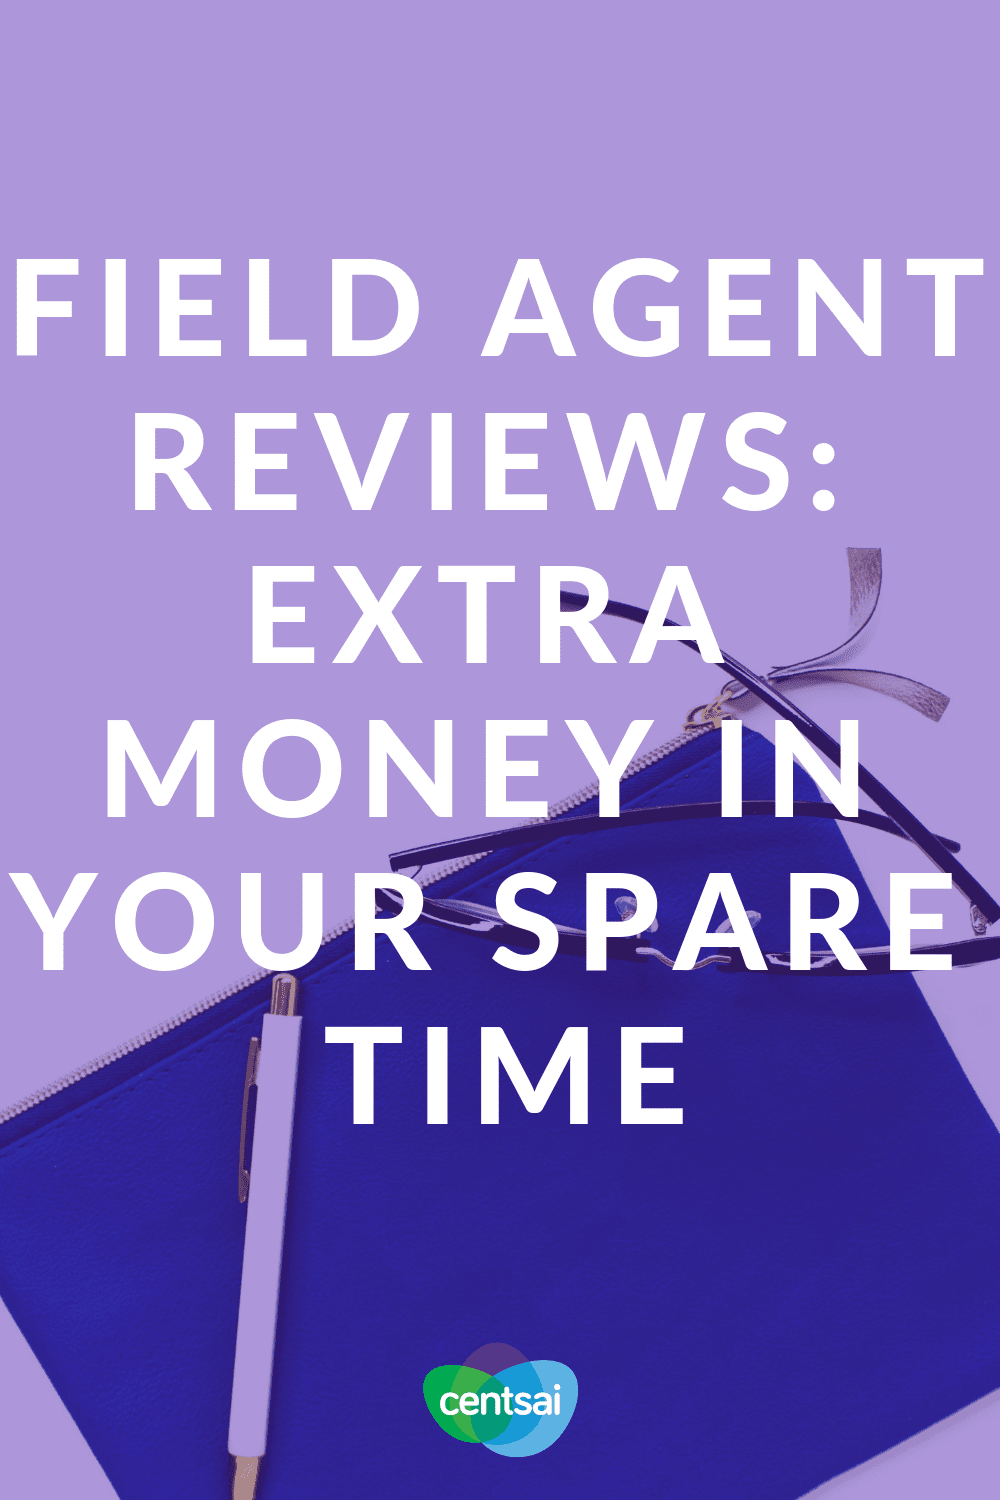 Field Agent Reviews: Extra Money in Your Spare Time. If you want to become a mystery shopper or need to have your store audited, check out our Field Agent reviews to see if the app can help you. #makemoremoney #sidehustle fieldagent #reviews #extramoney